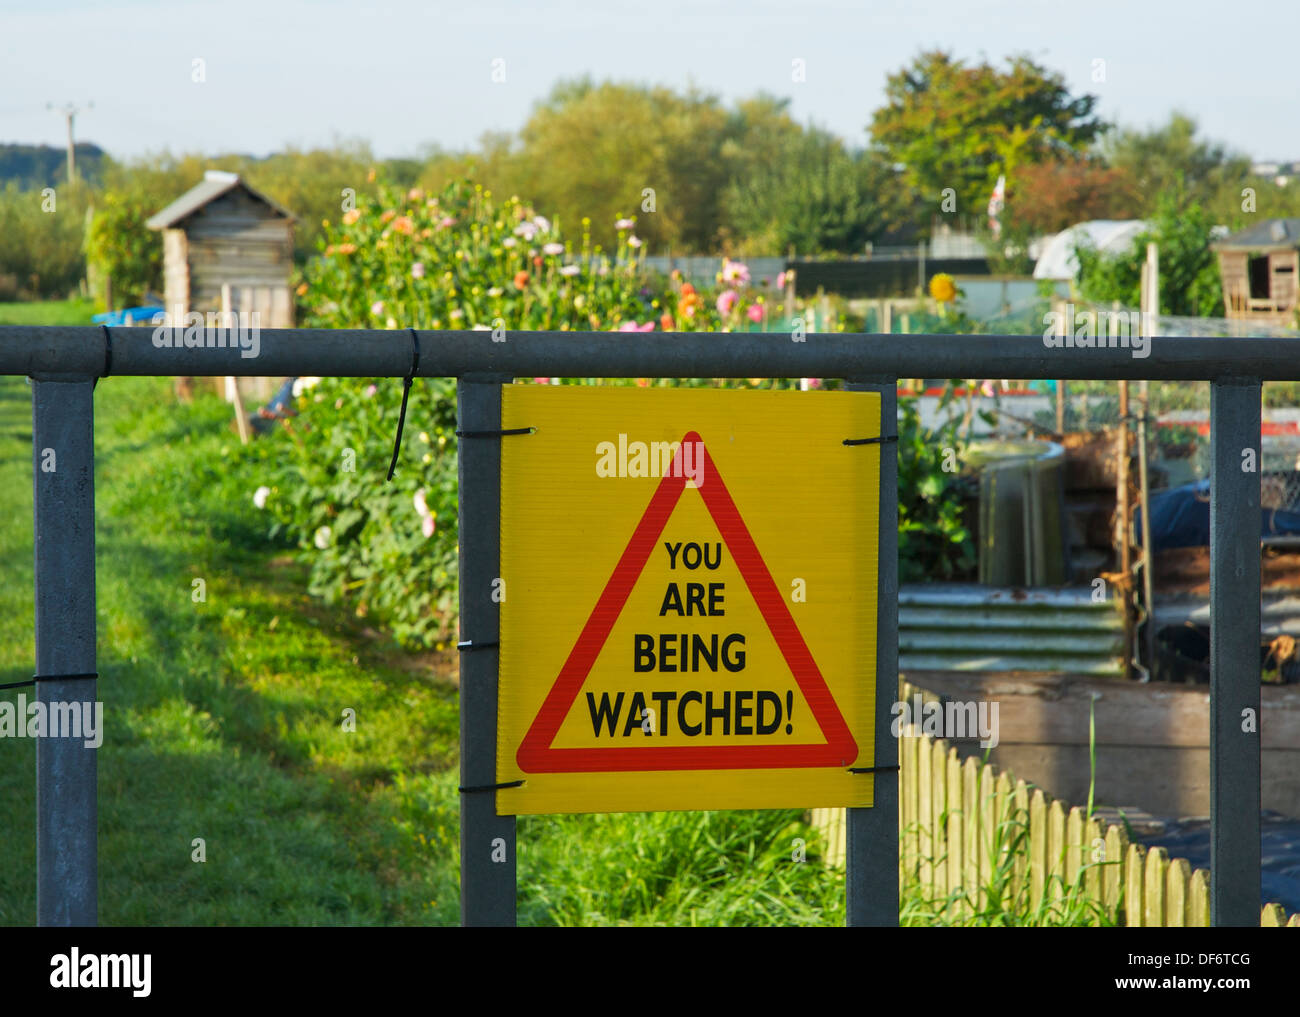 Sign - You Are Being Watched - on gate of allotment, Ulverston, Cumbria, England UK - Stock Image